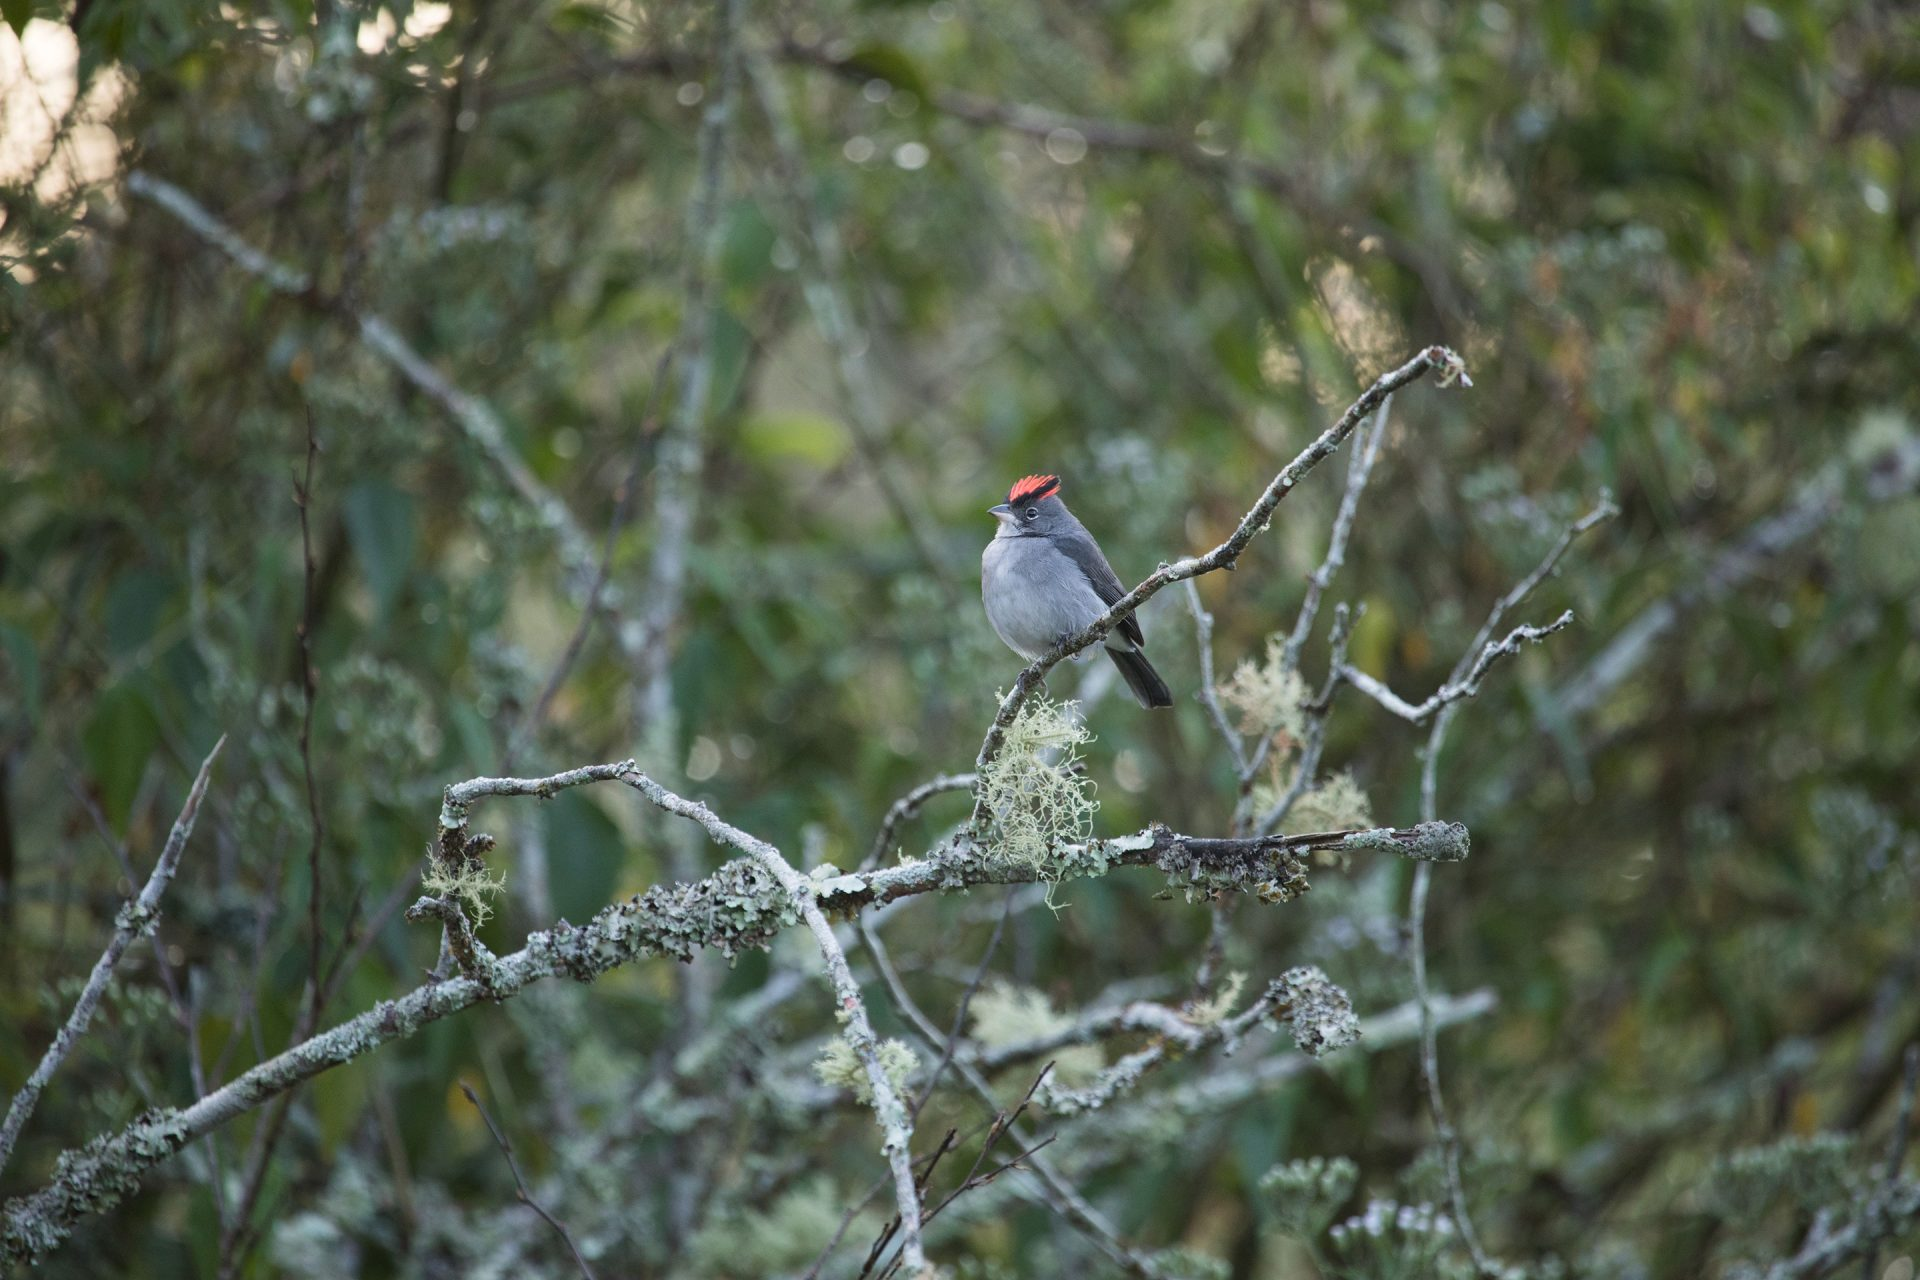 Gray Pileated Finch was common near the river below.